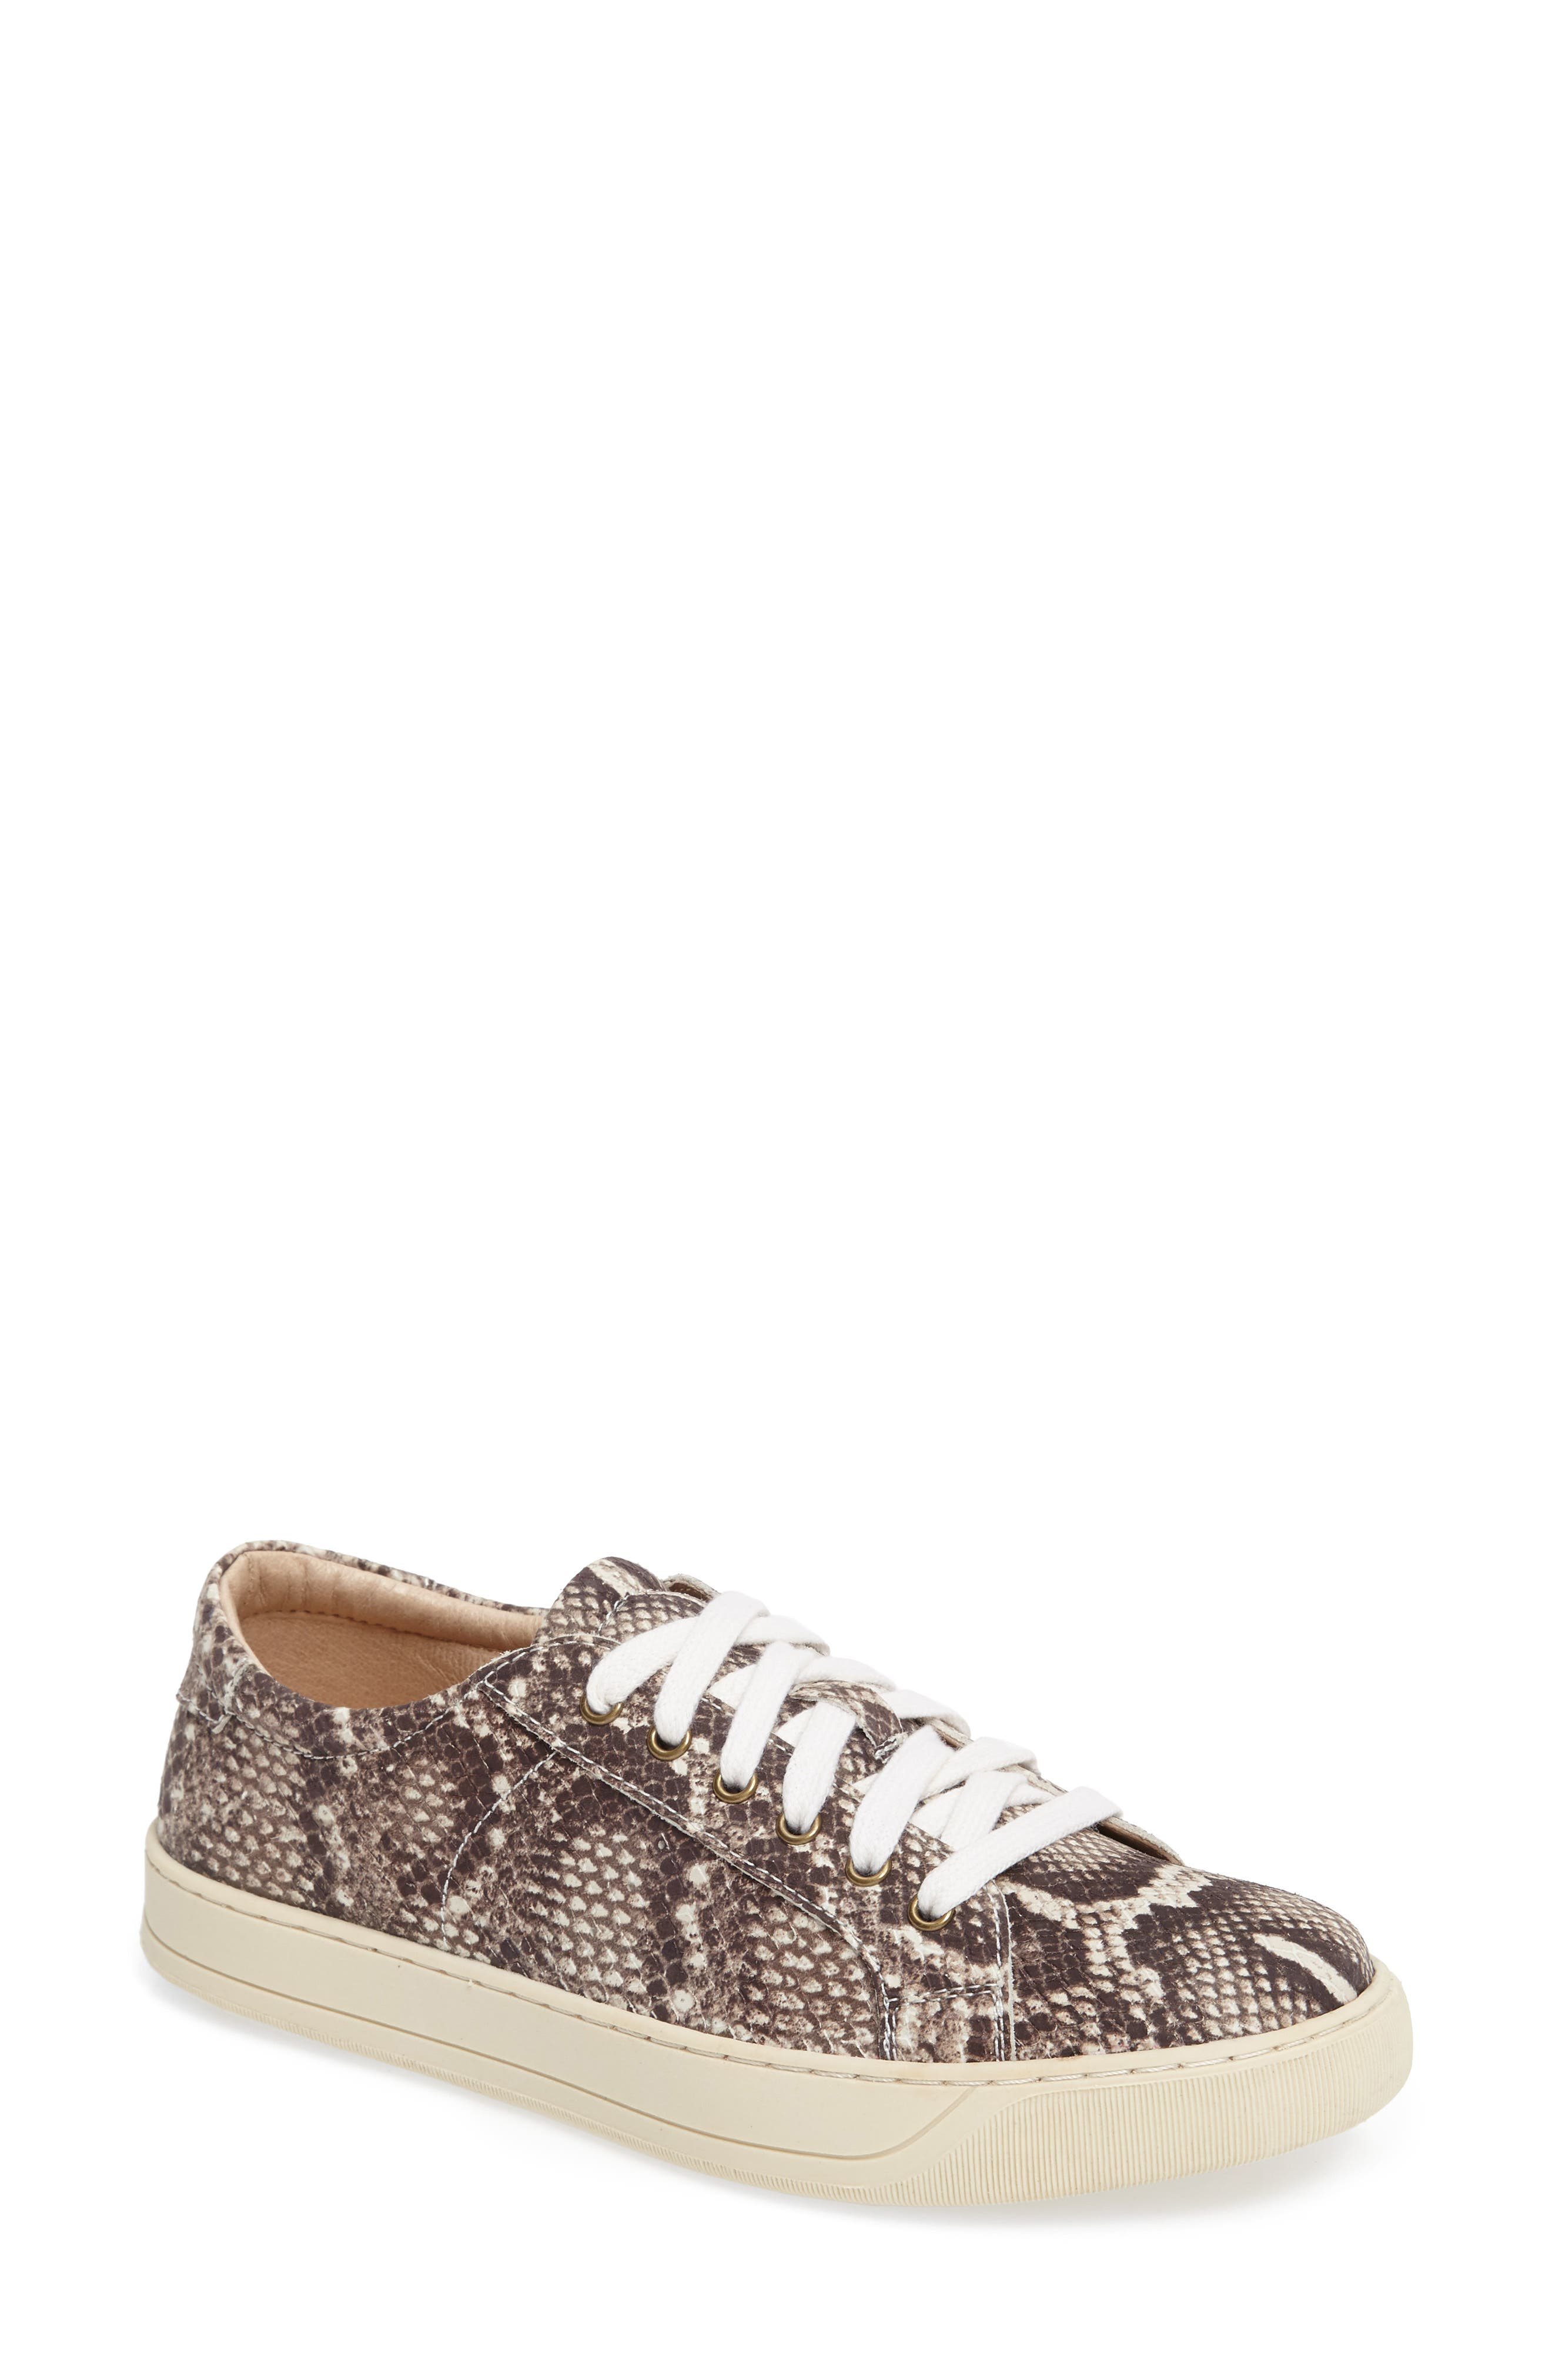 'Emerson' Sneaker,                         Main,                         color, Snake Print Leather